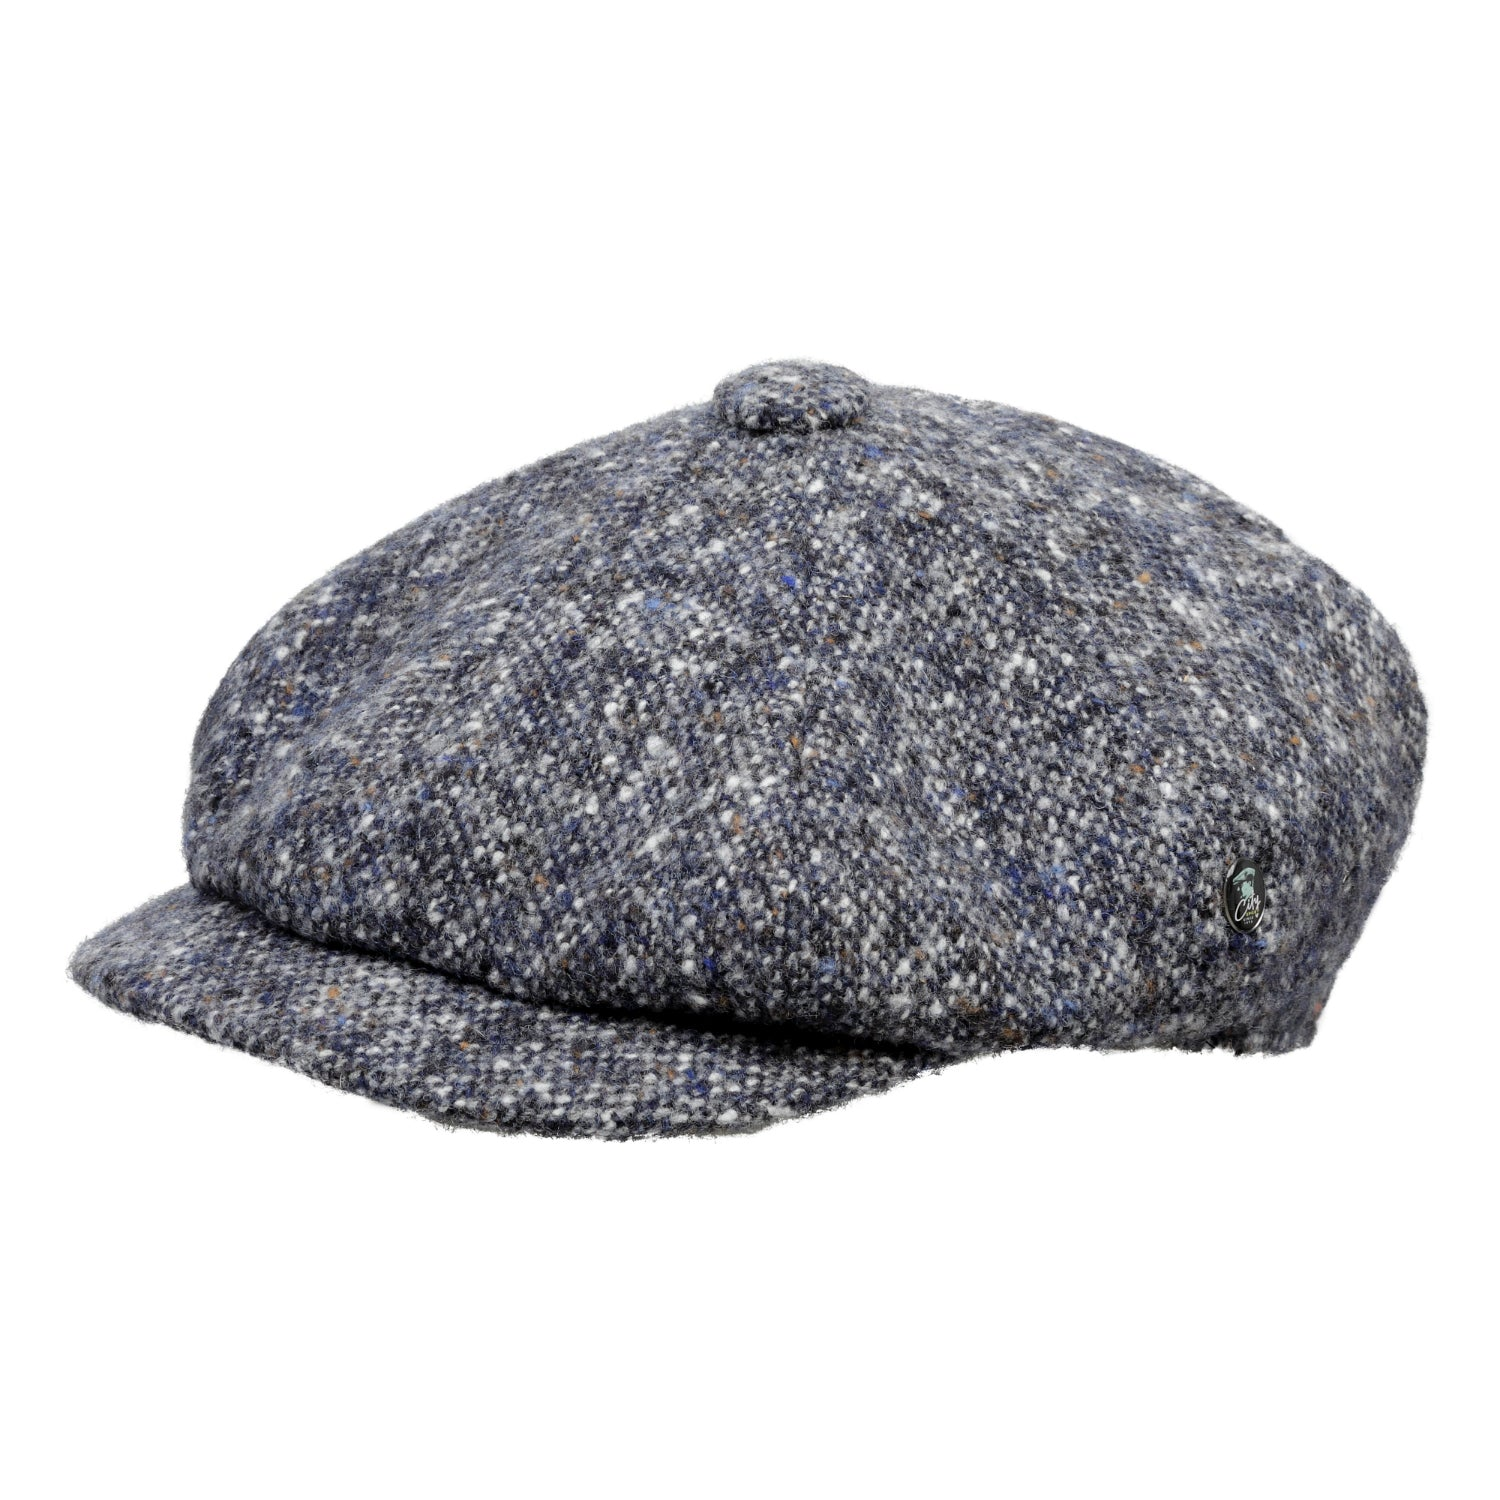 732882dc Donegal Tweed Baker Boy Cap   Blue Grey Speckled   buy now at The Cashmere  Choice ...